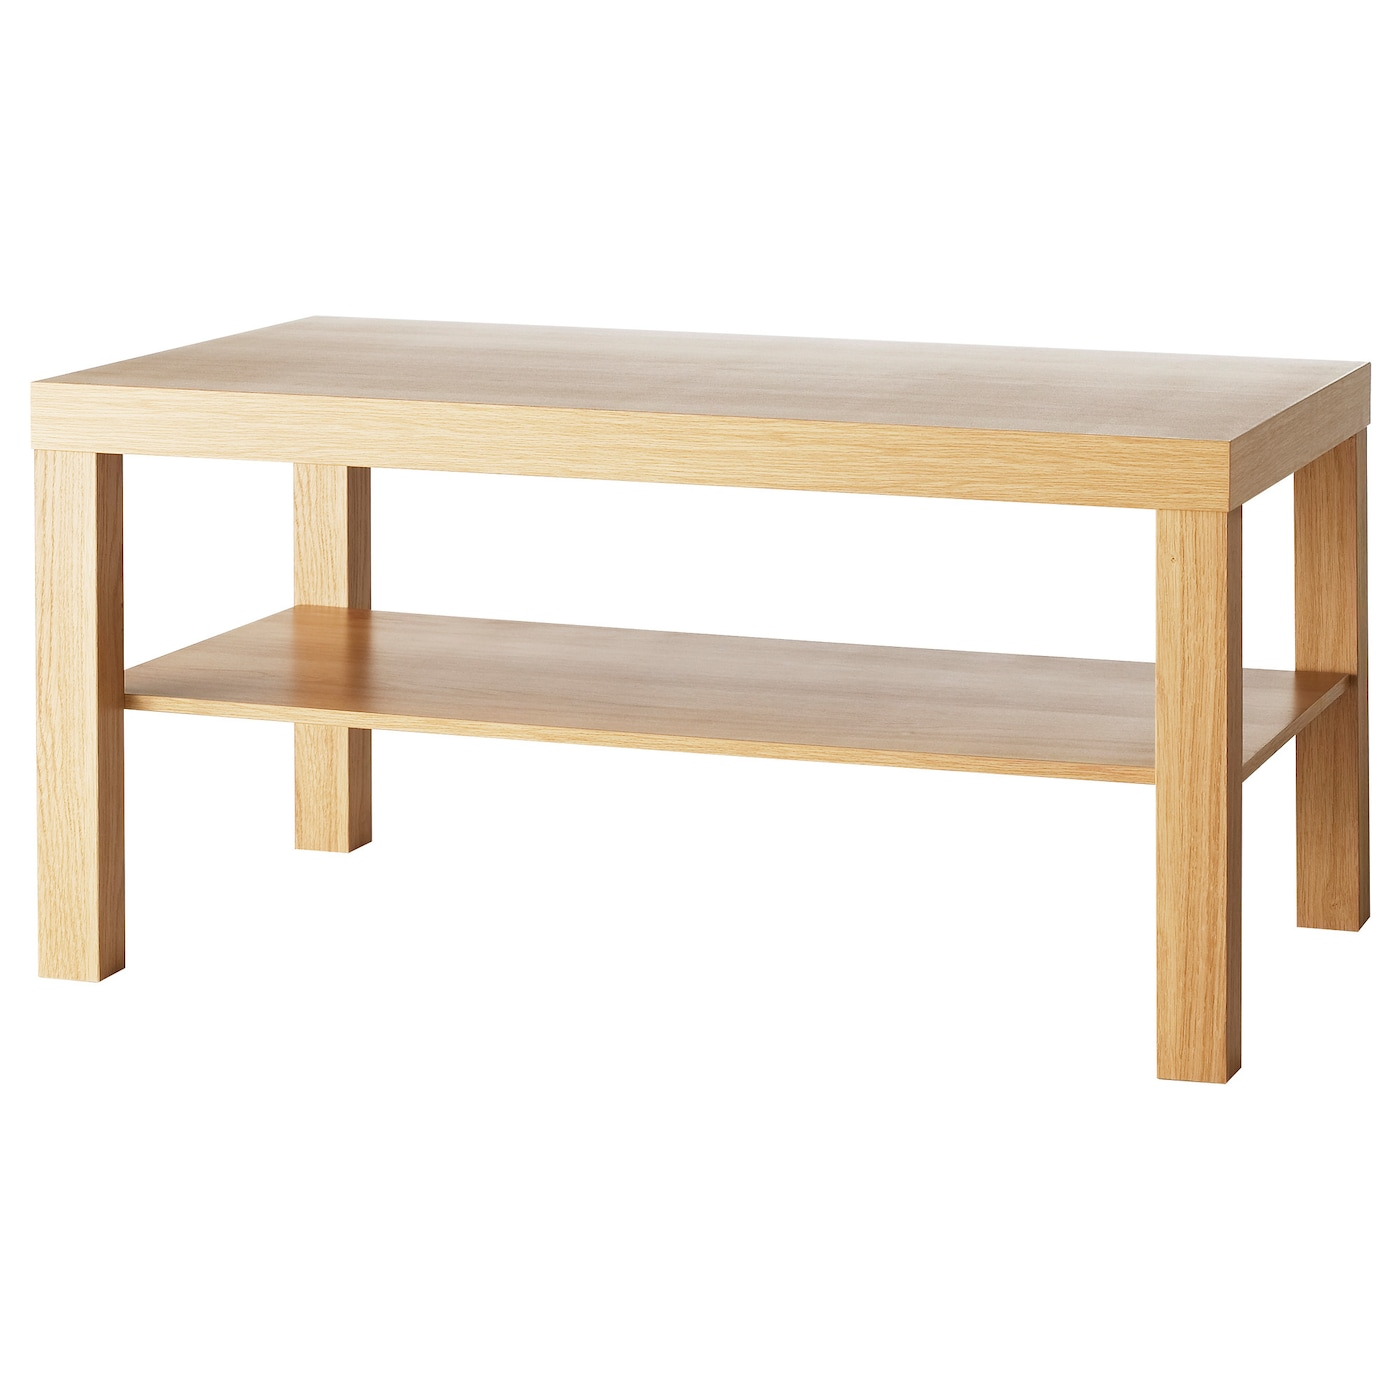 Lack coffee table oak effect 90x55 cm ikea Ikea coffee tables and end tables